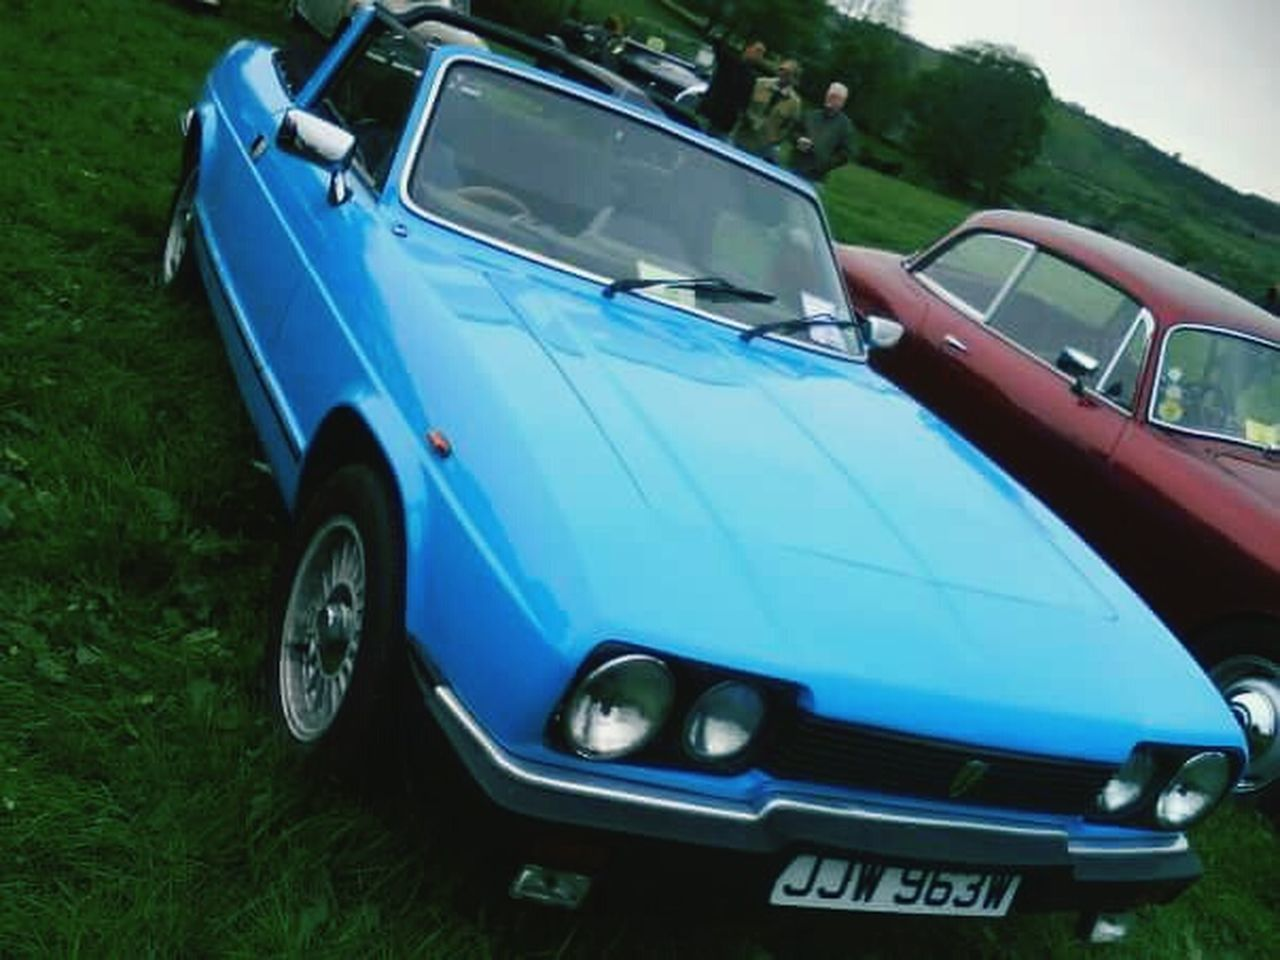 Reliant Scimitar Classic Car Classic Gtse GTE Old Car Old Cars Old Cars/vans